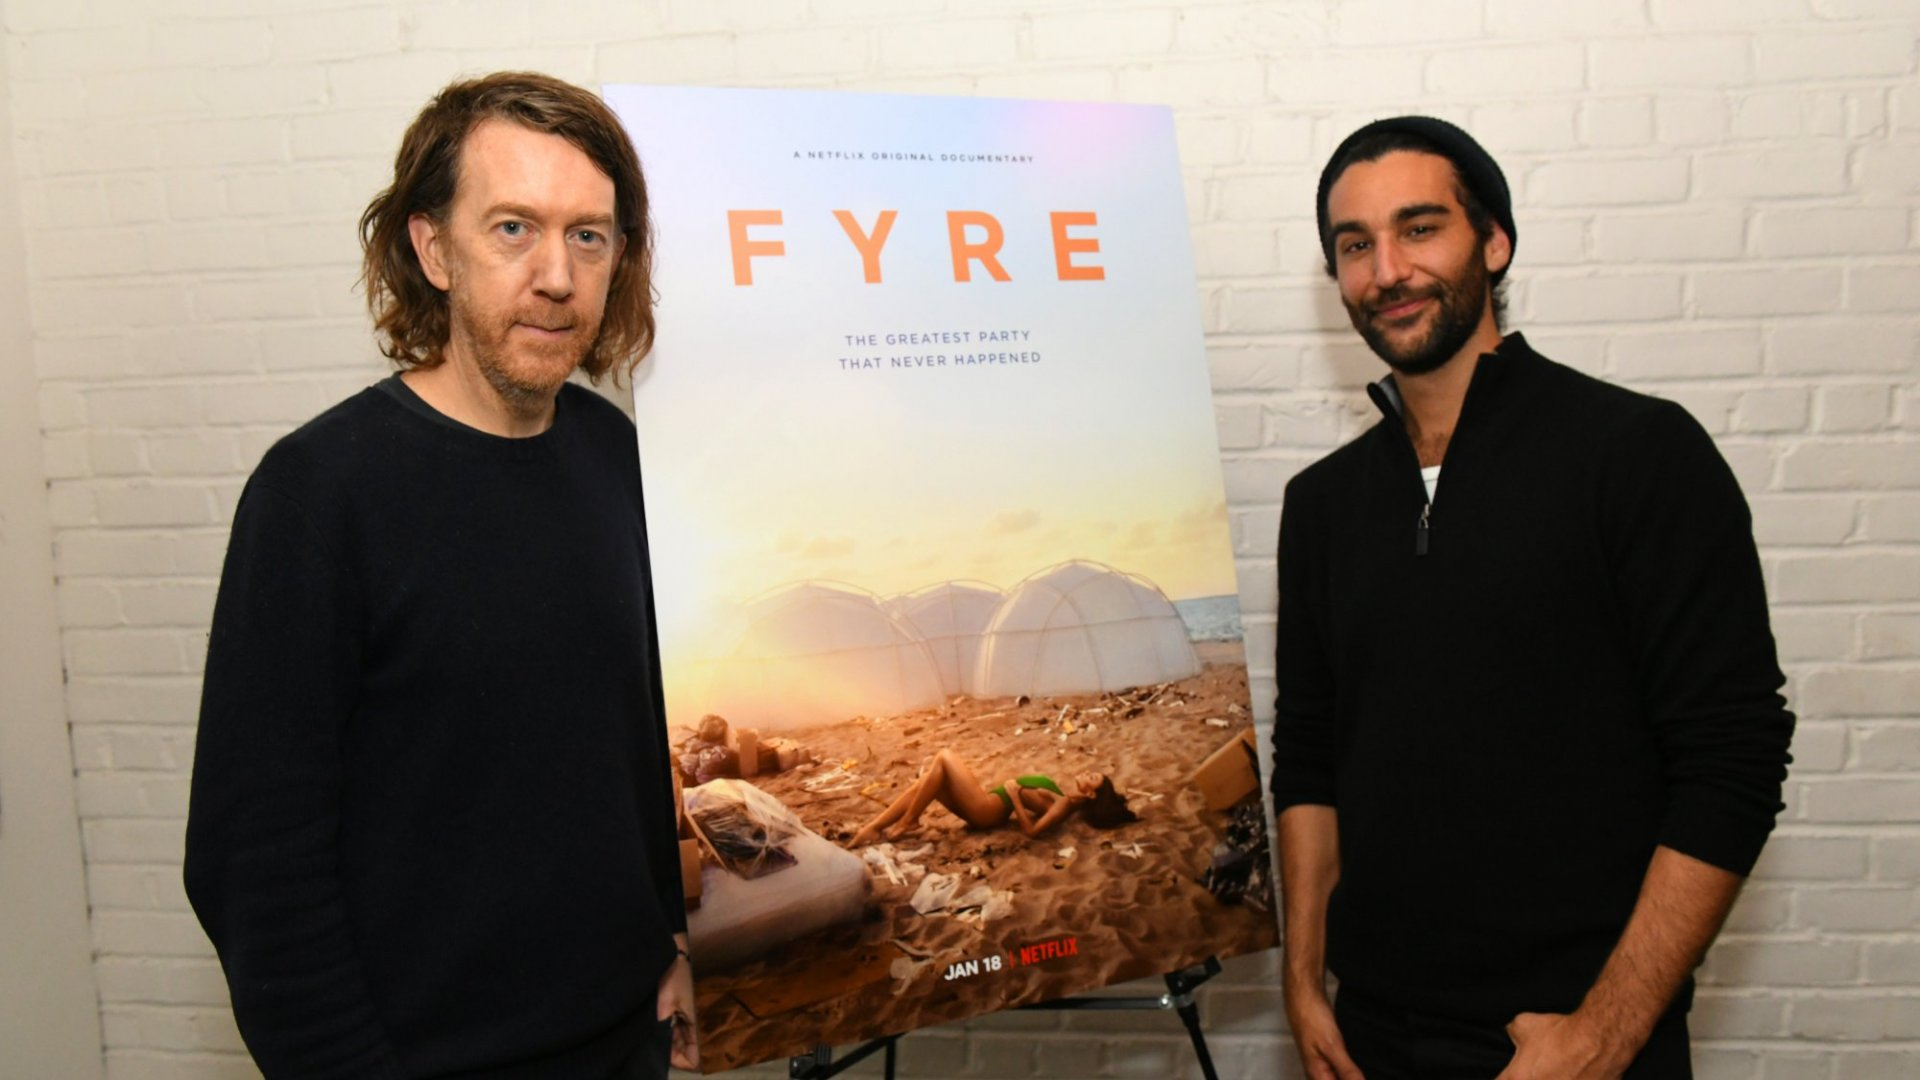 The Problems With Fyre Festival May Not Be Too Far From Your Own Leadership Practices